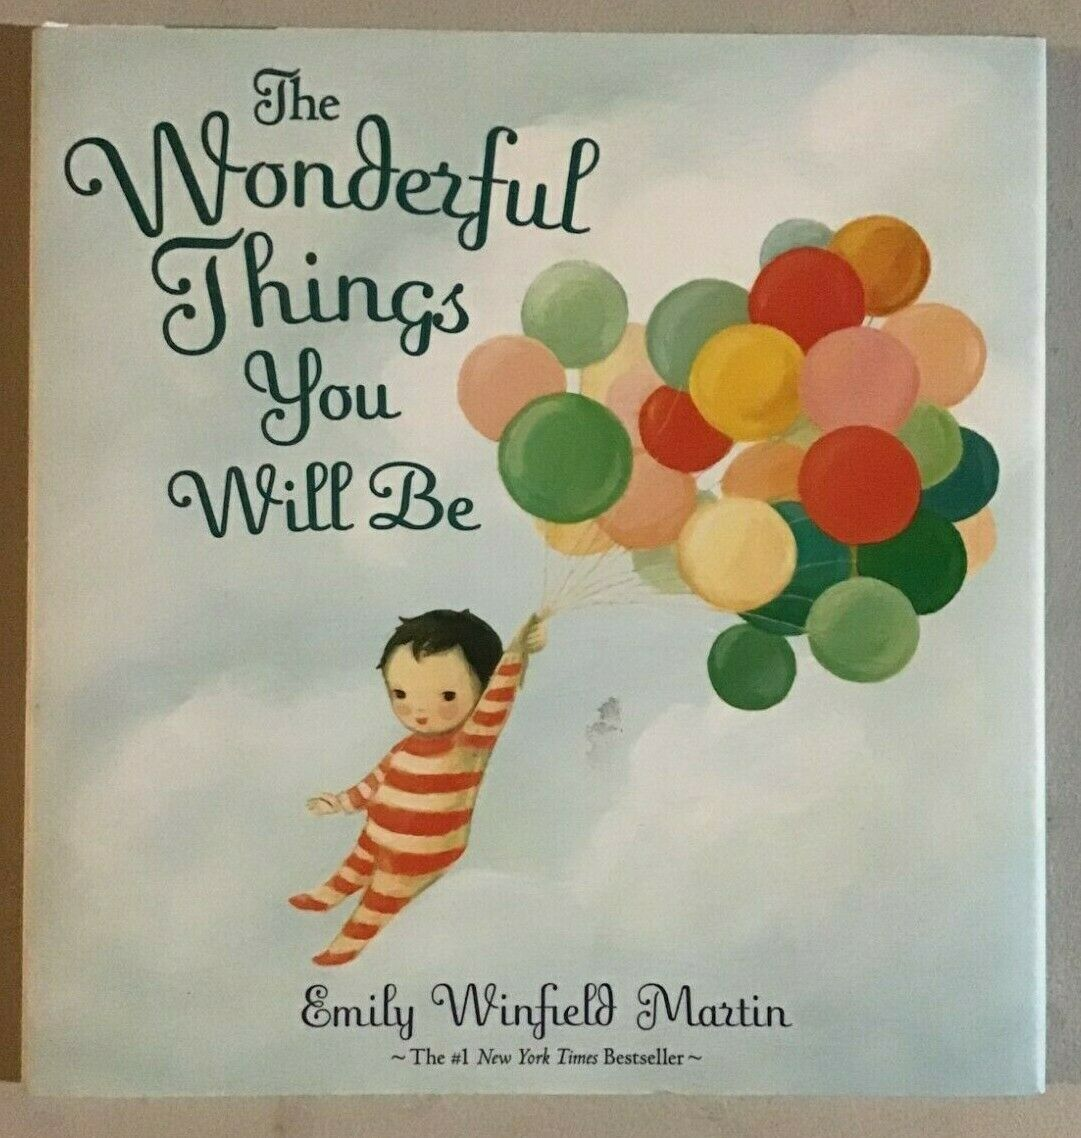 The Wonderful Things You Will Be by Emily Winfield Martin Ha